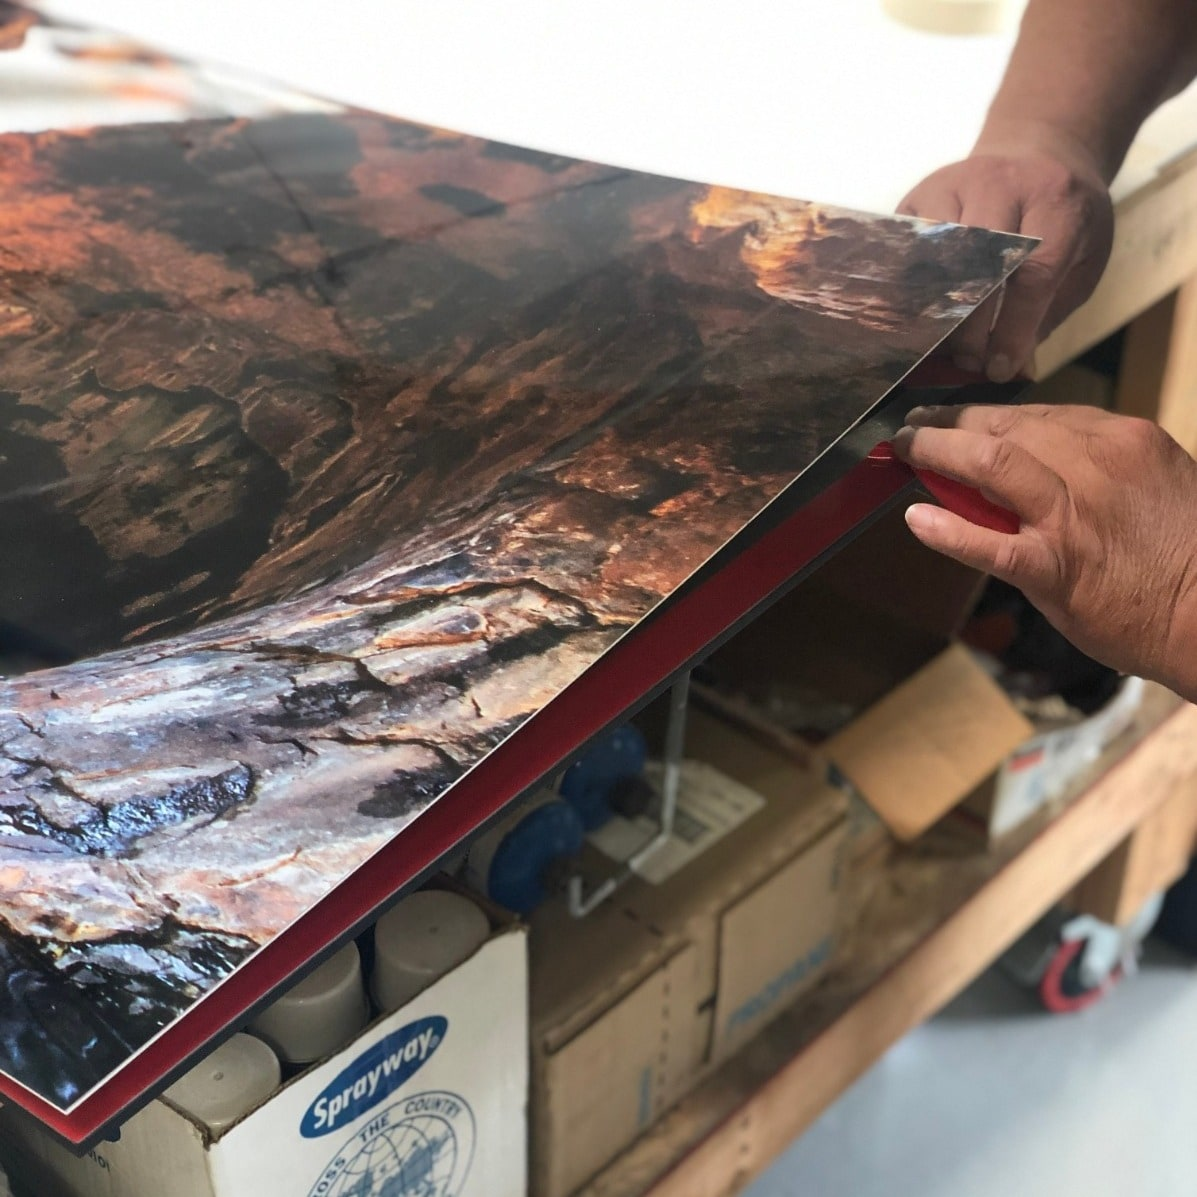 Acrylic Prints at Prolab Digital use backers to provide behind-the-scenes excellence